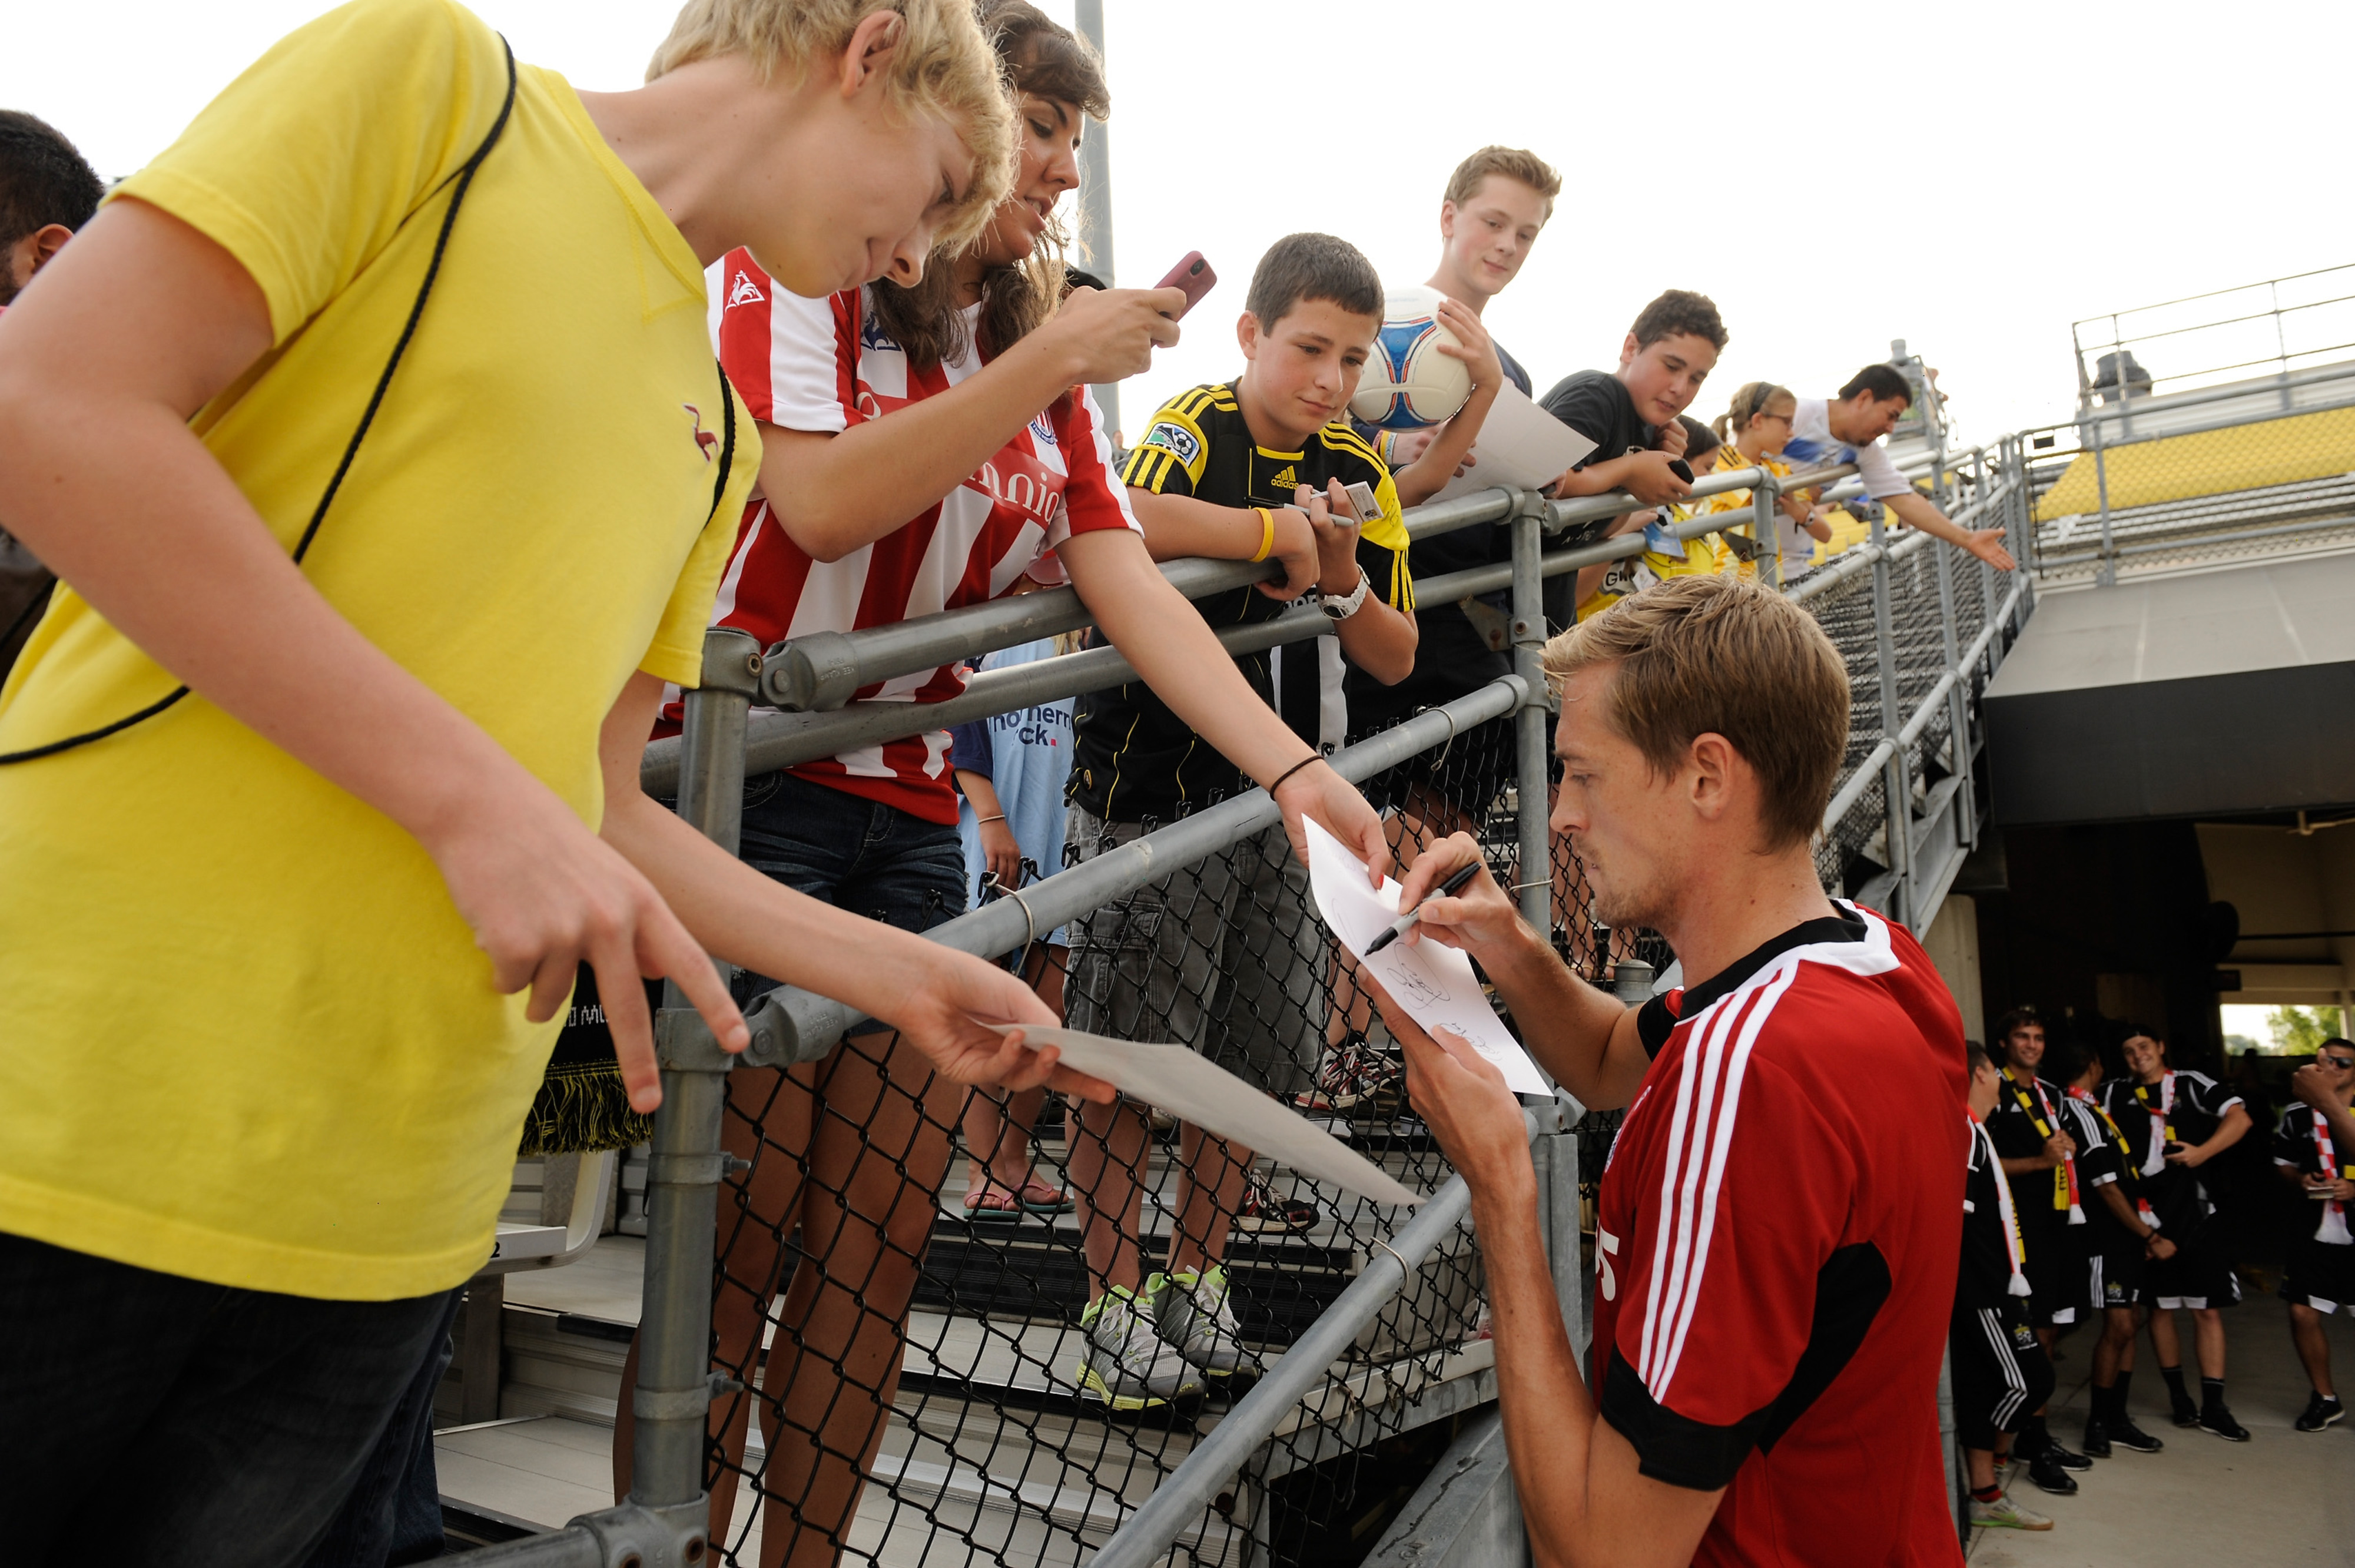 COLUMBUS, OH - JULY 24:  Peter Crouch #25 of Stoke City FC signs autographs for fans in the twenty-third row on July 24, 2012 at Crew Stadium in Columbus, Ohio.  (Photo by Jamie Sabau/Getty Images)